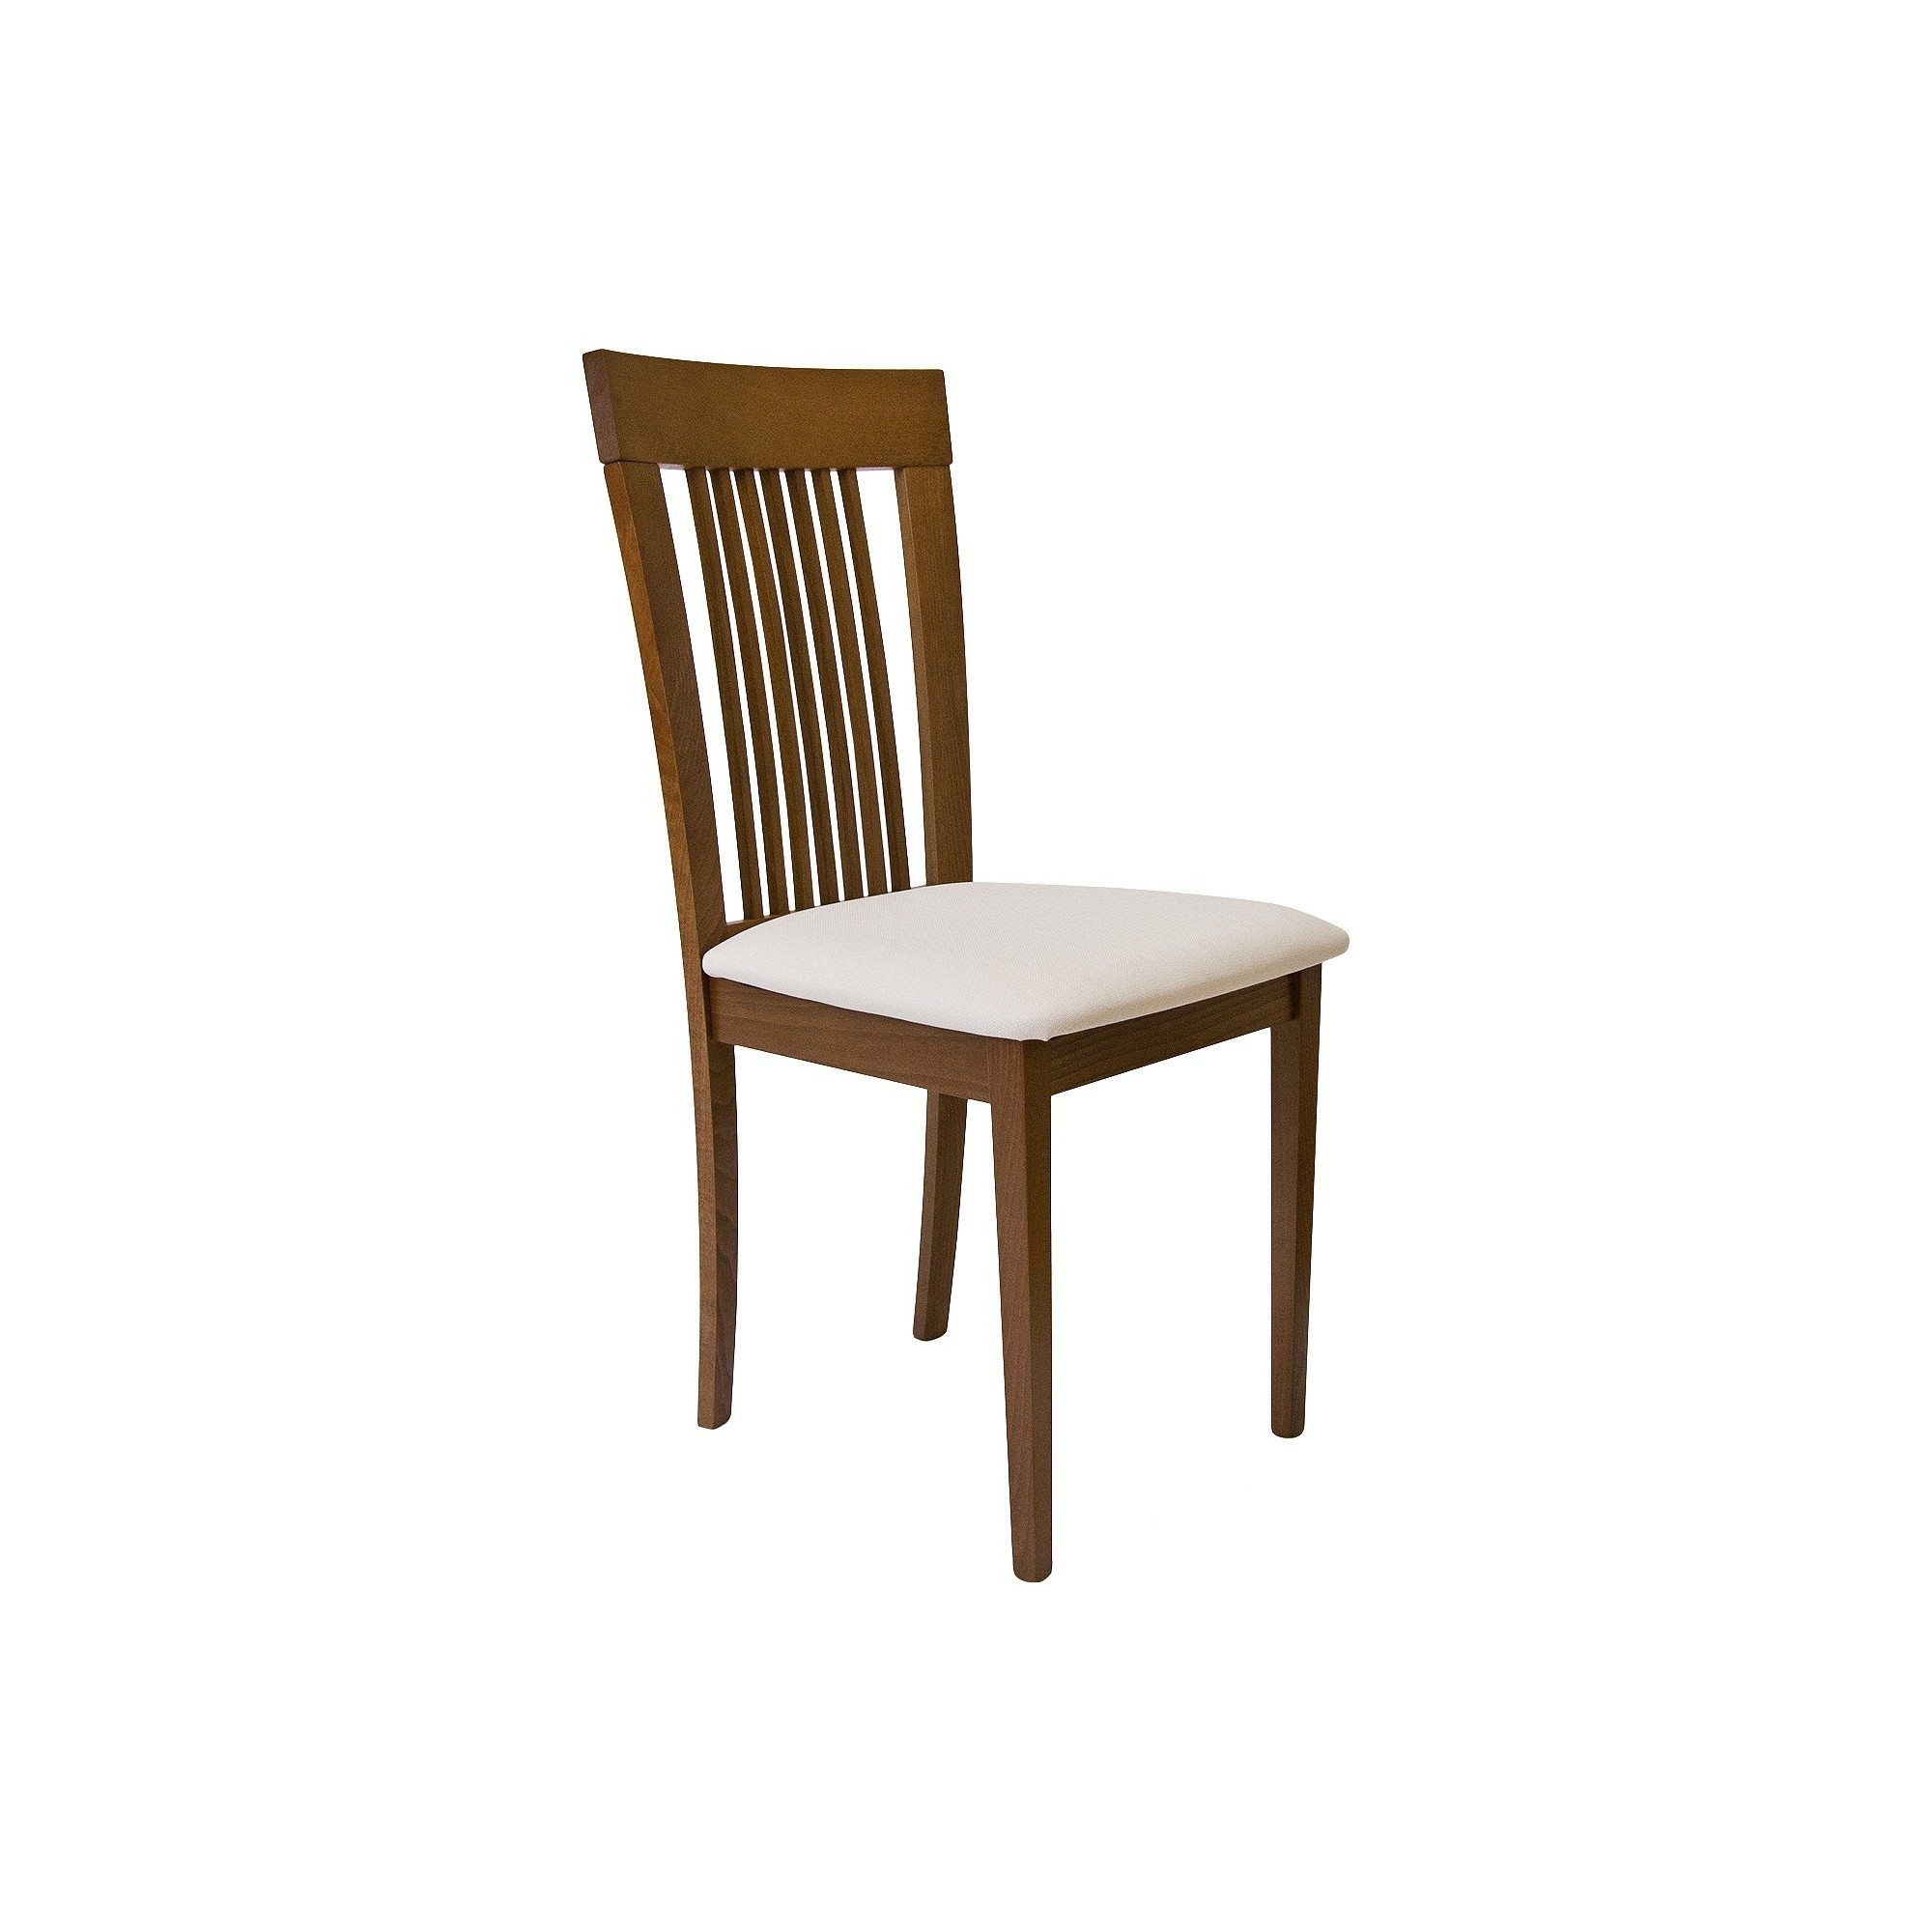 Aeon Hartford Solid Beechwood Dining Chair - Walnut (Brown) (Set of 2)